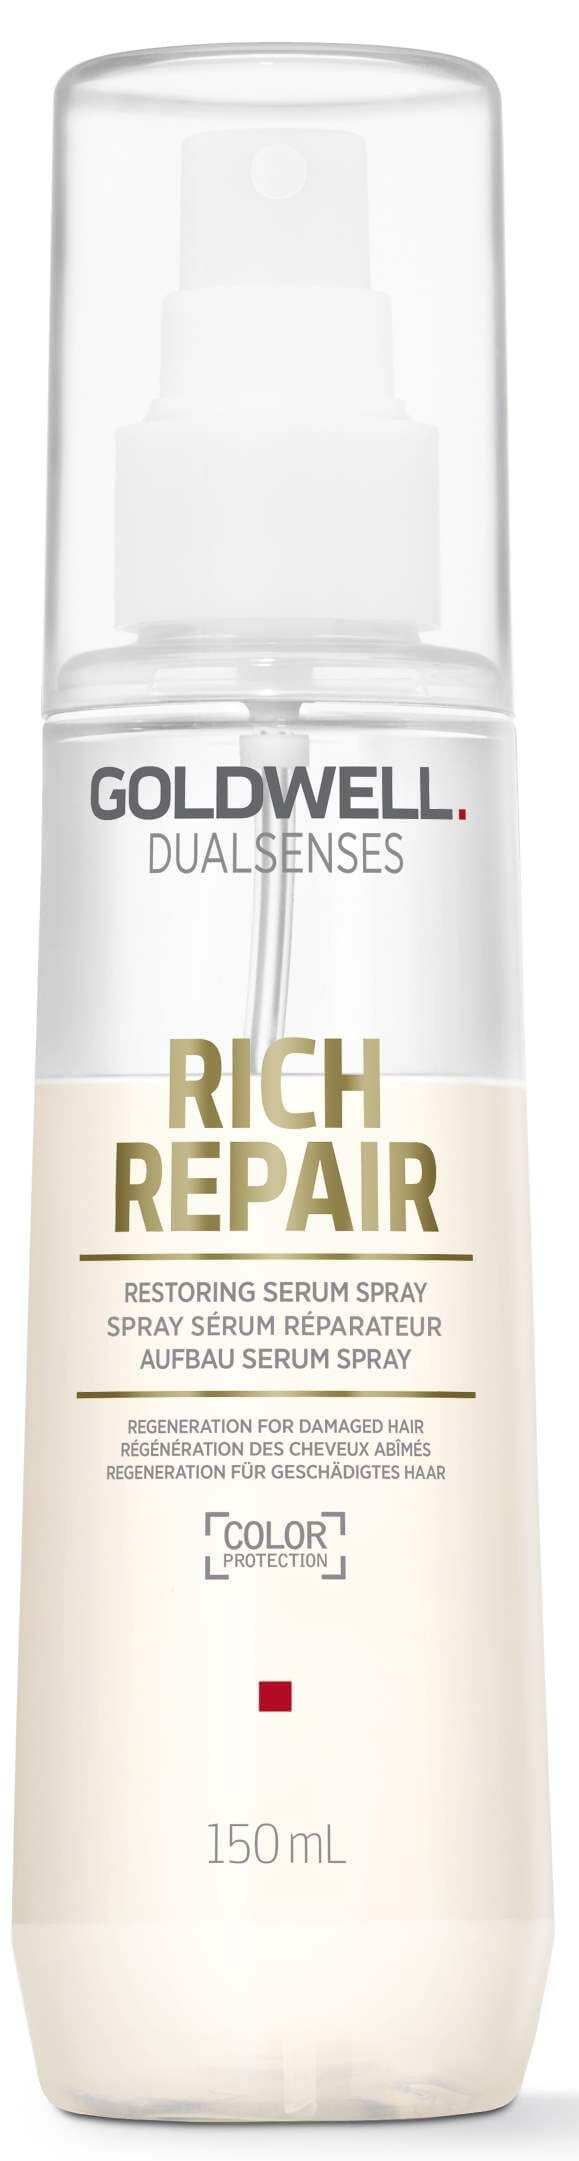 Dualsenses Rich Repair Restoring Serum Spray.